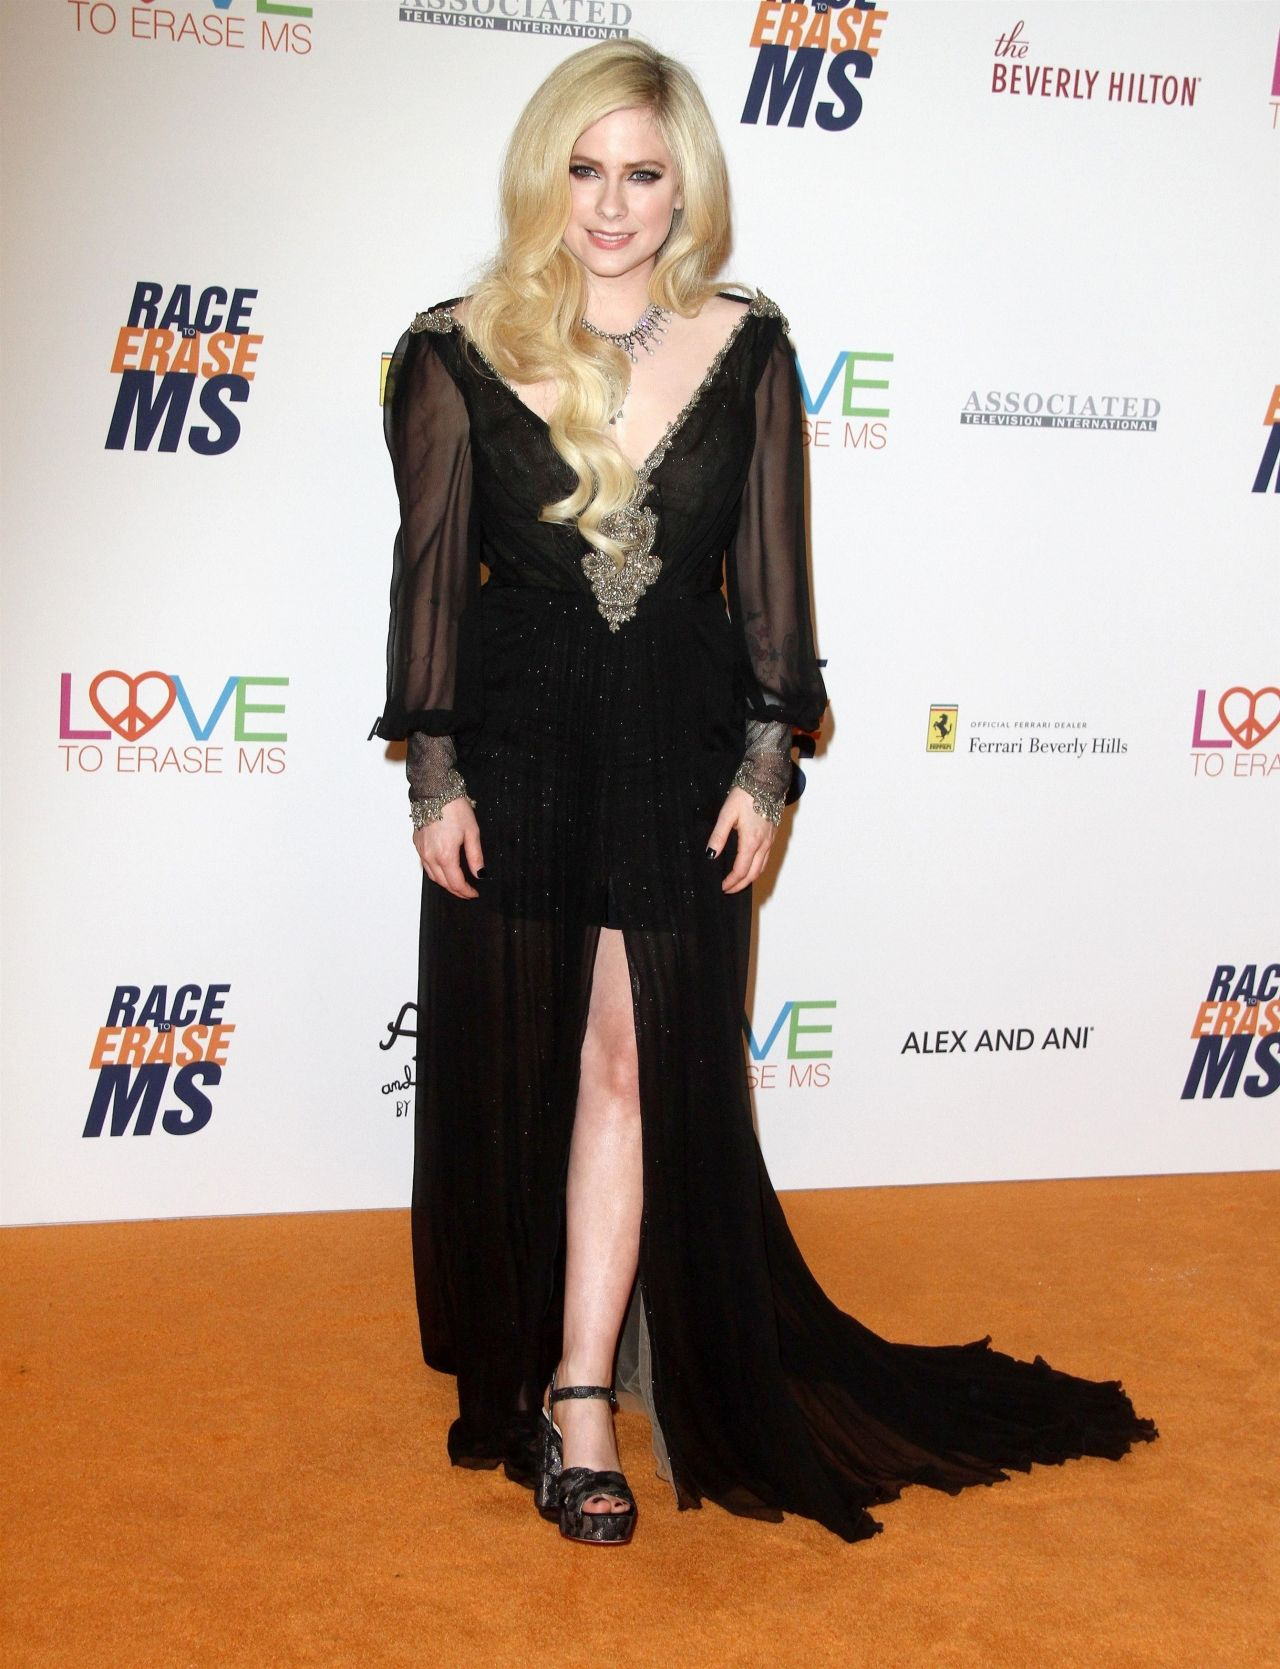 http://celebmafia.com/wp-content/uploads/2018/04/avril-lavigne-2018-race-to-erase-ms-gala-in-beverly-hills-4.jpg